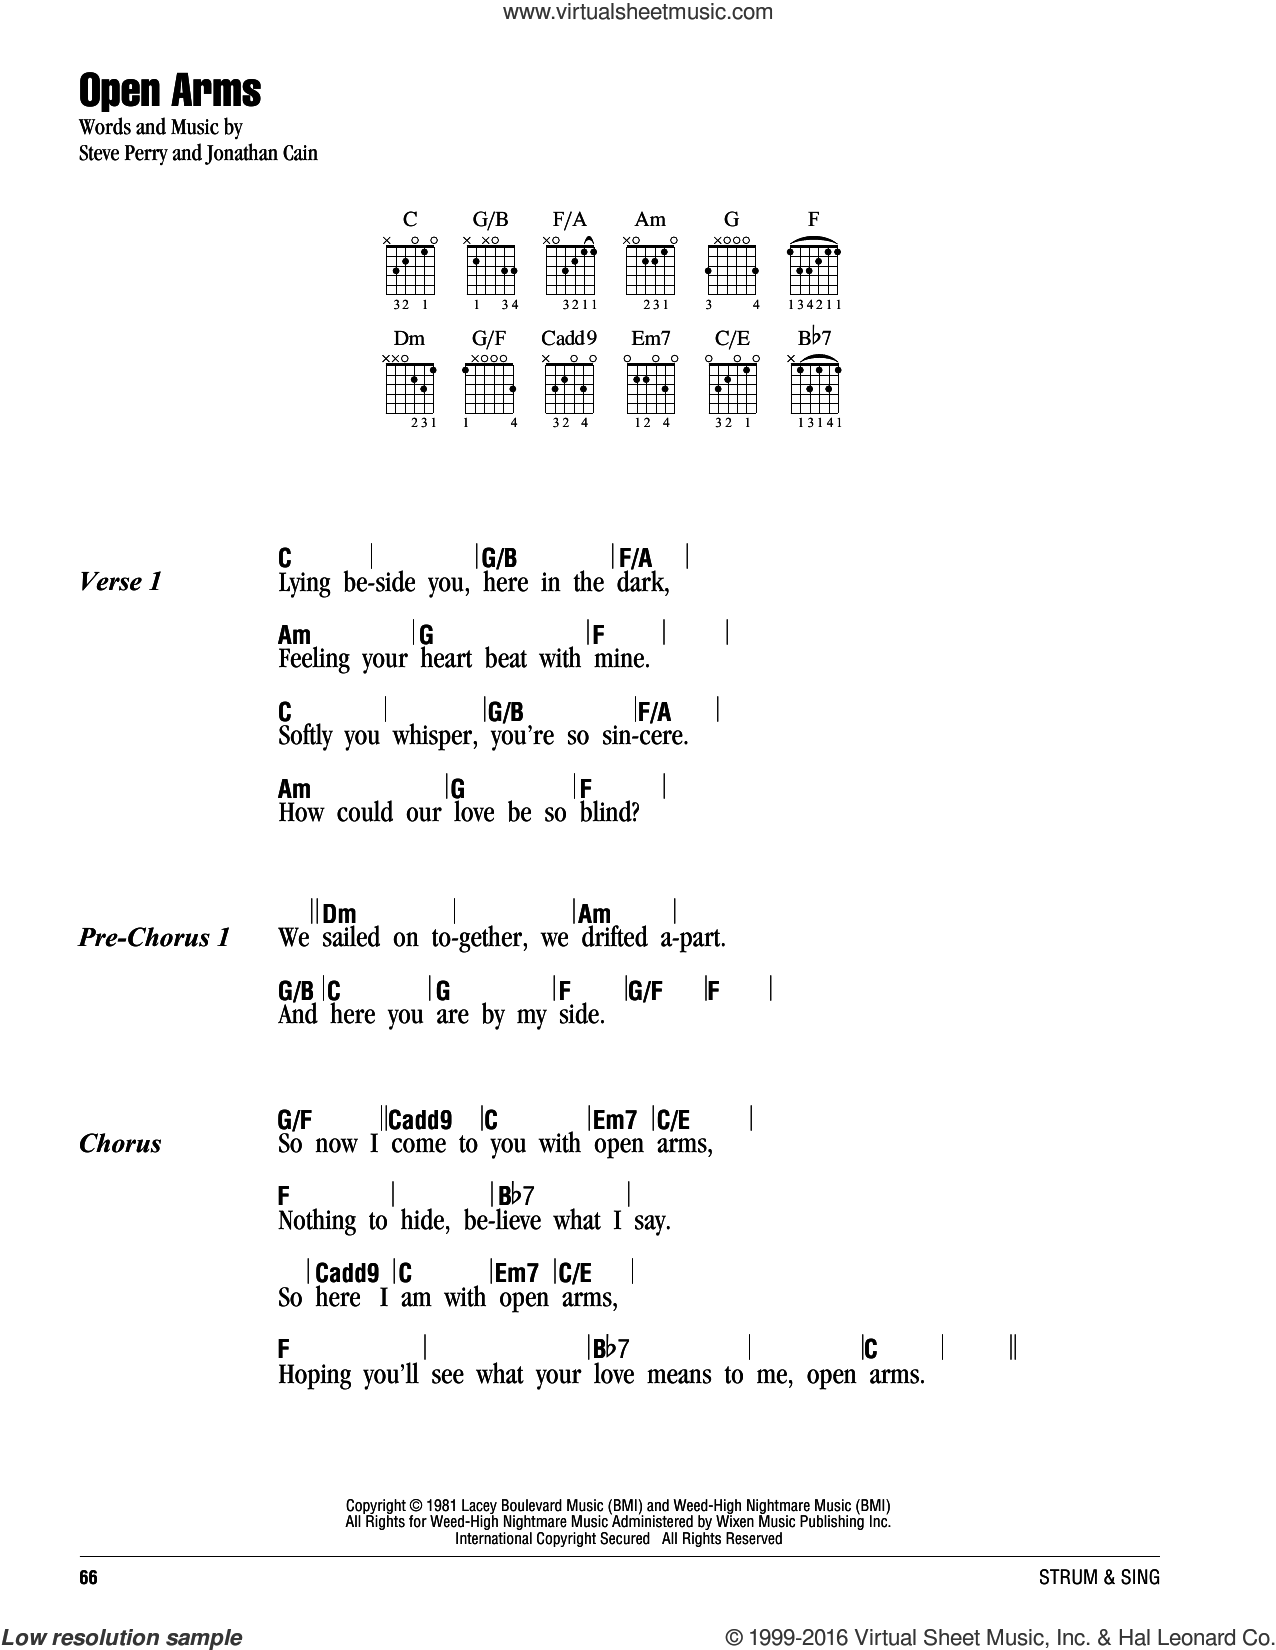 Open Arms sheet music for guitar (chords) by Journey, Mariah Carey, Jonathan Cain and Steve Perry, intermediate skill level